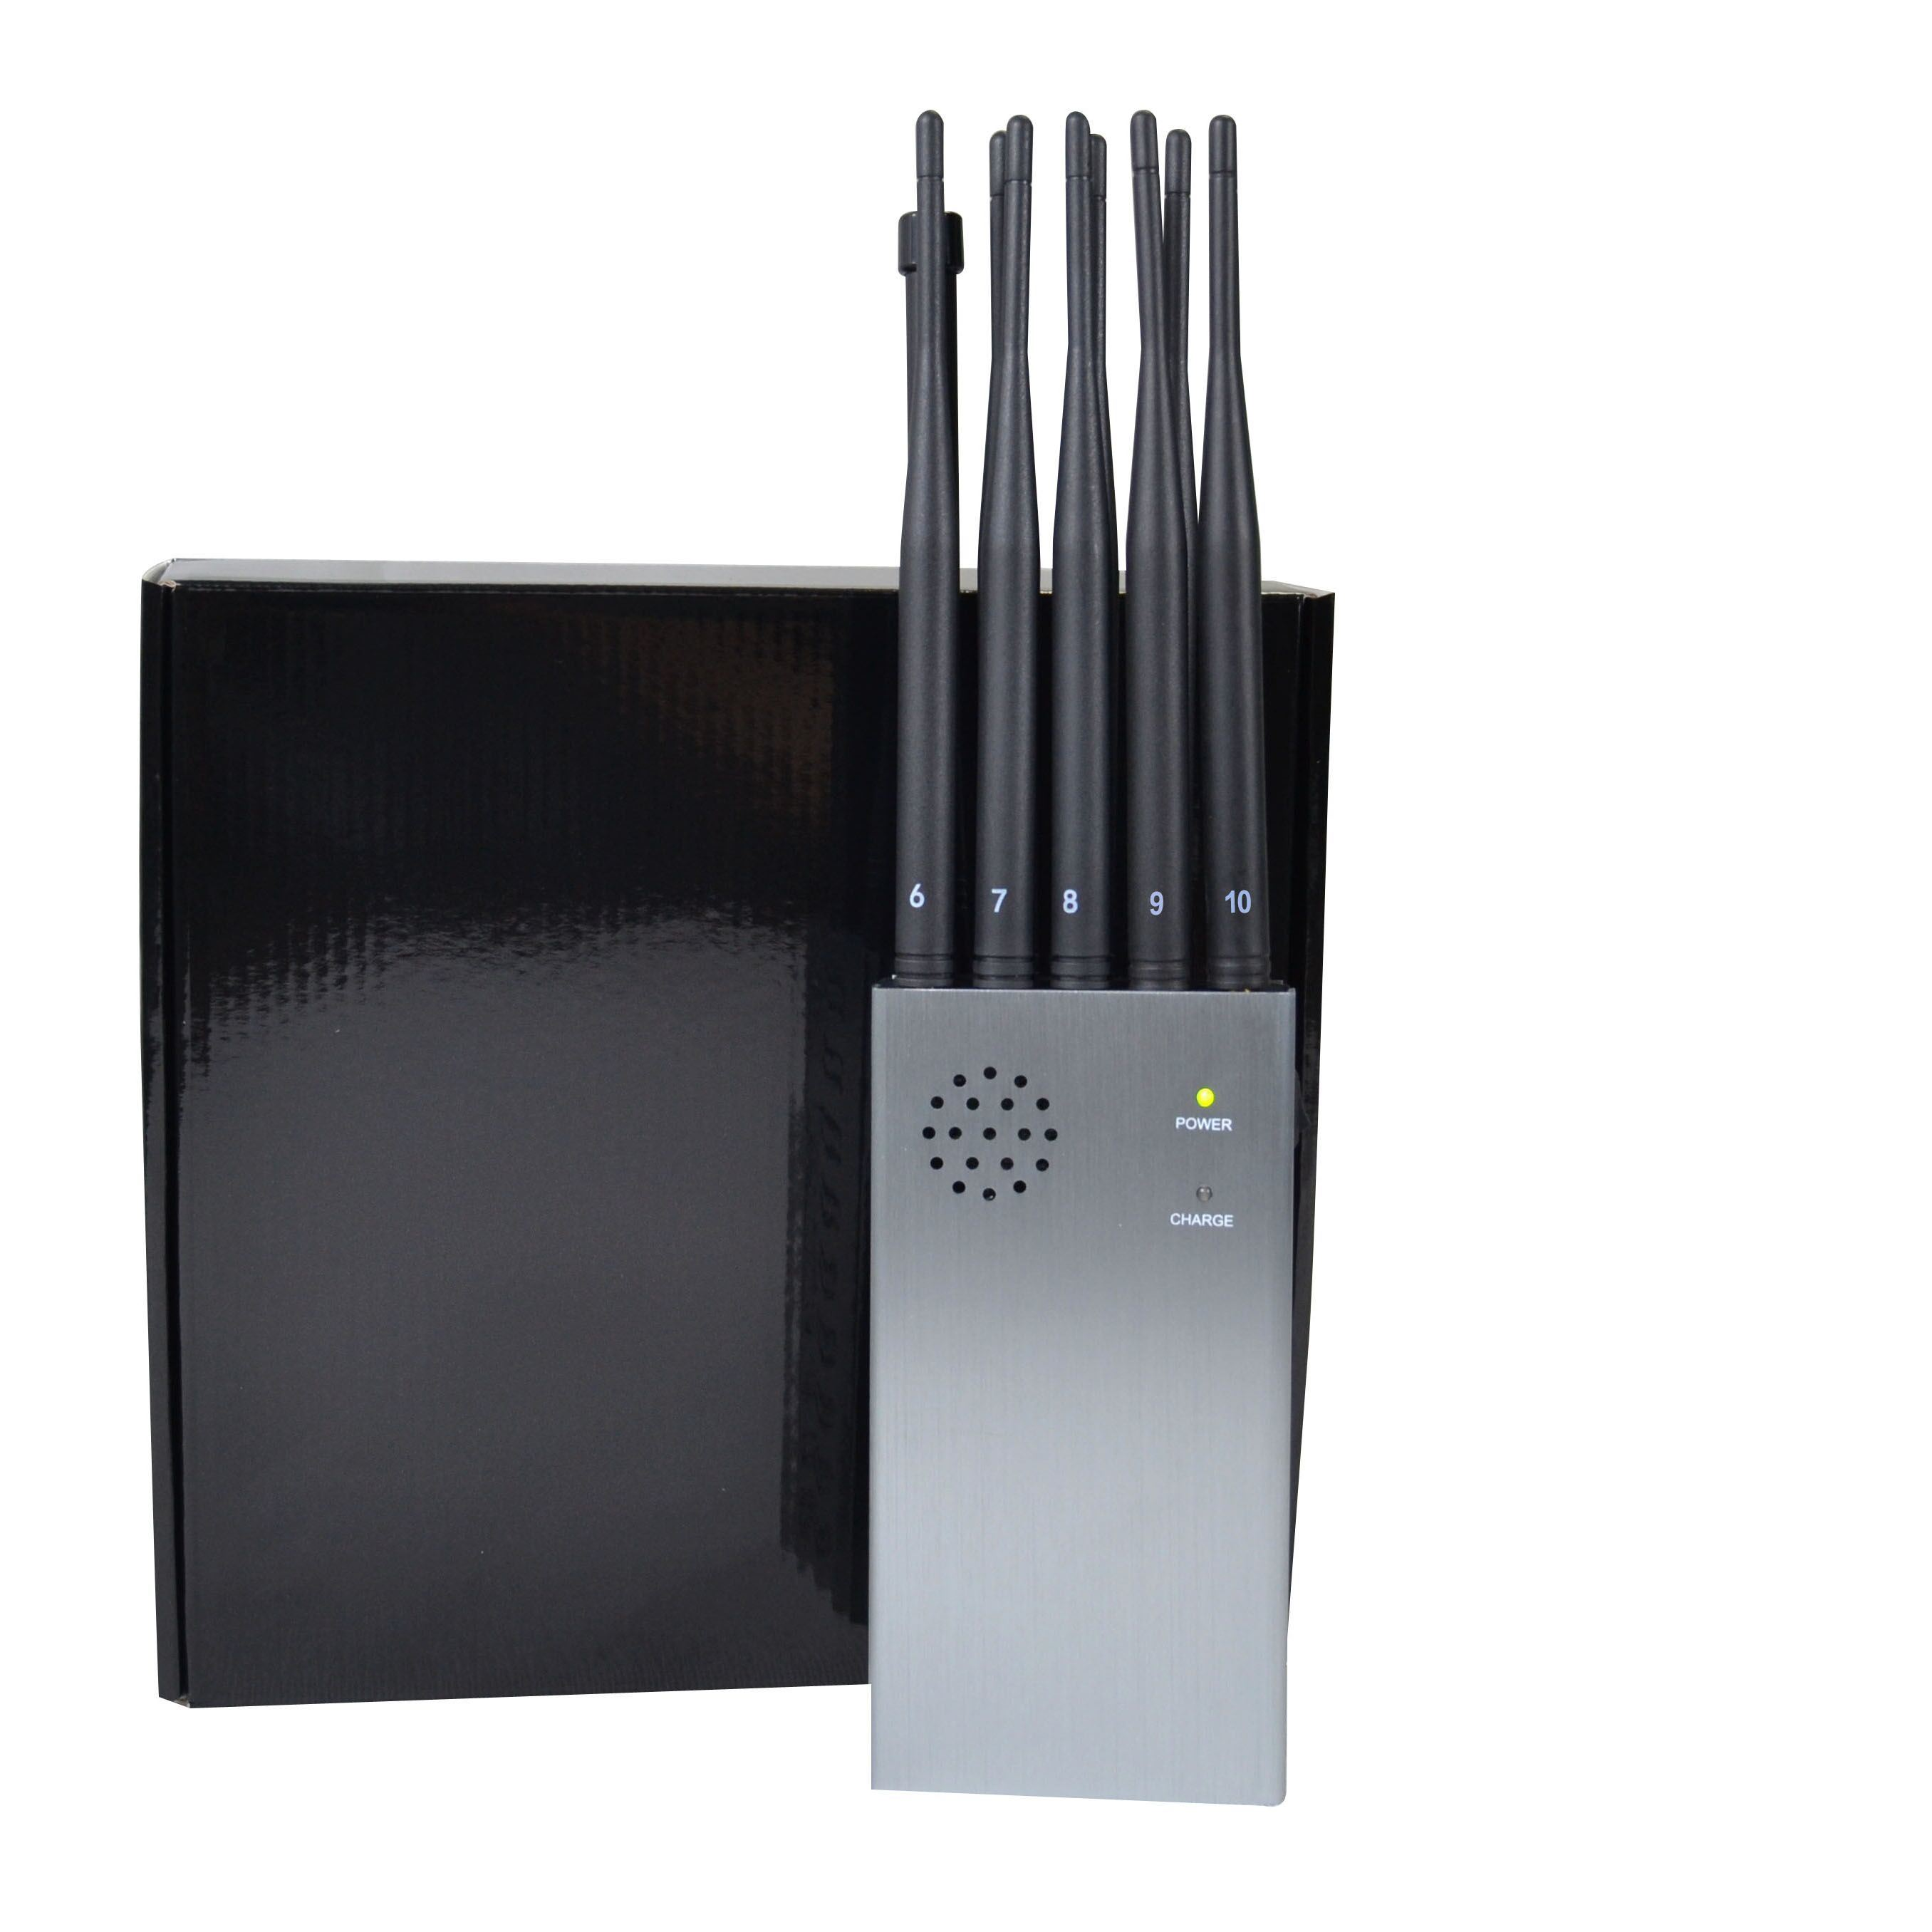 phone jammer build wall